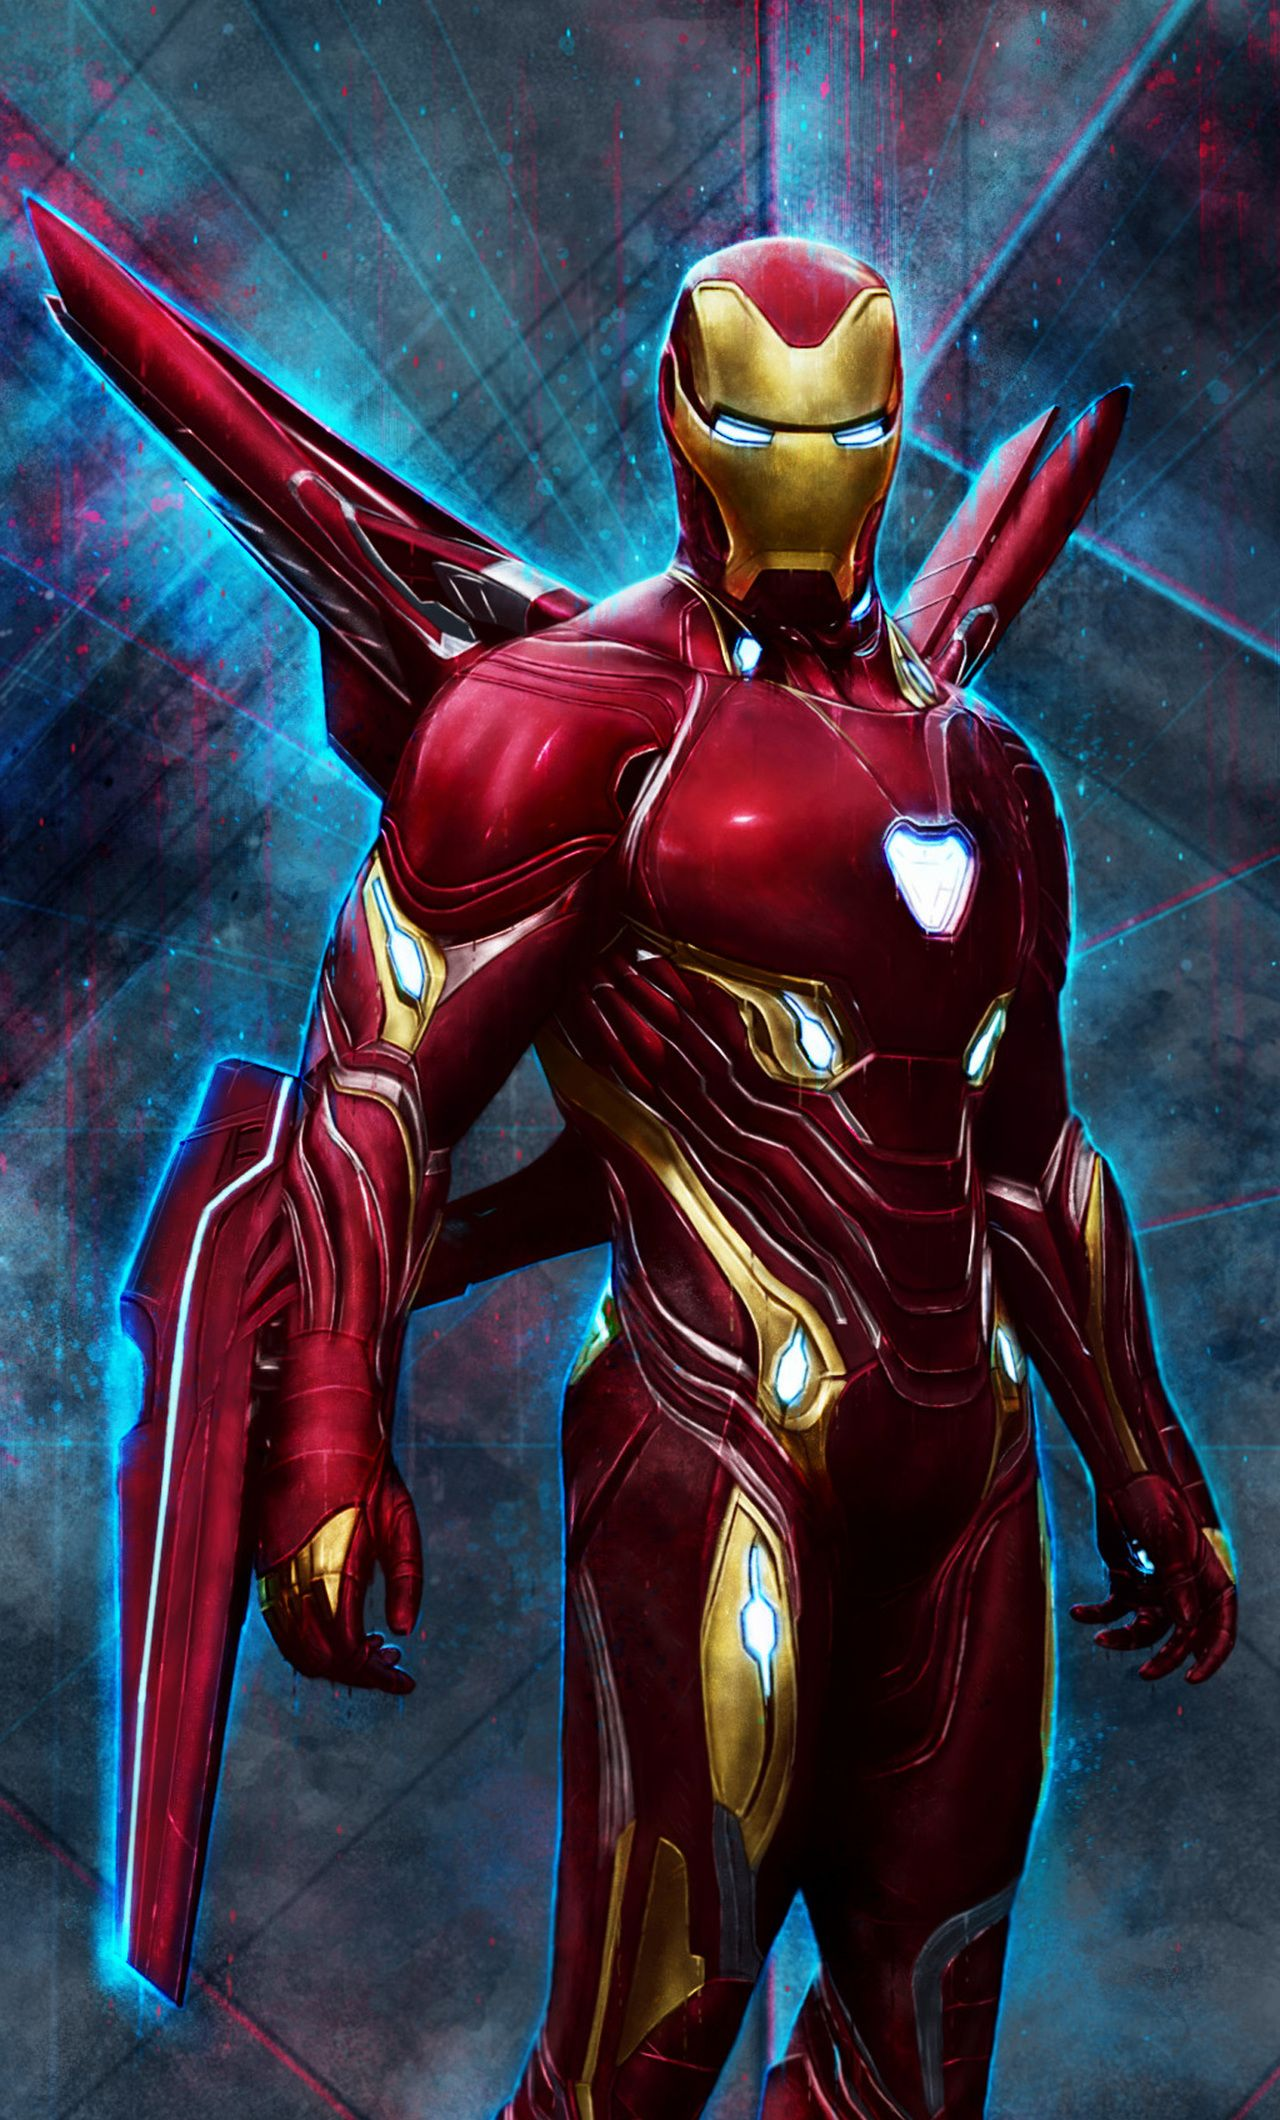 1280x2120 Iron Man Bleeding Edge Armor Iphone 6 Hd 4k